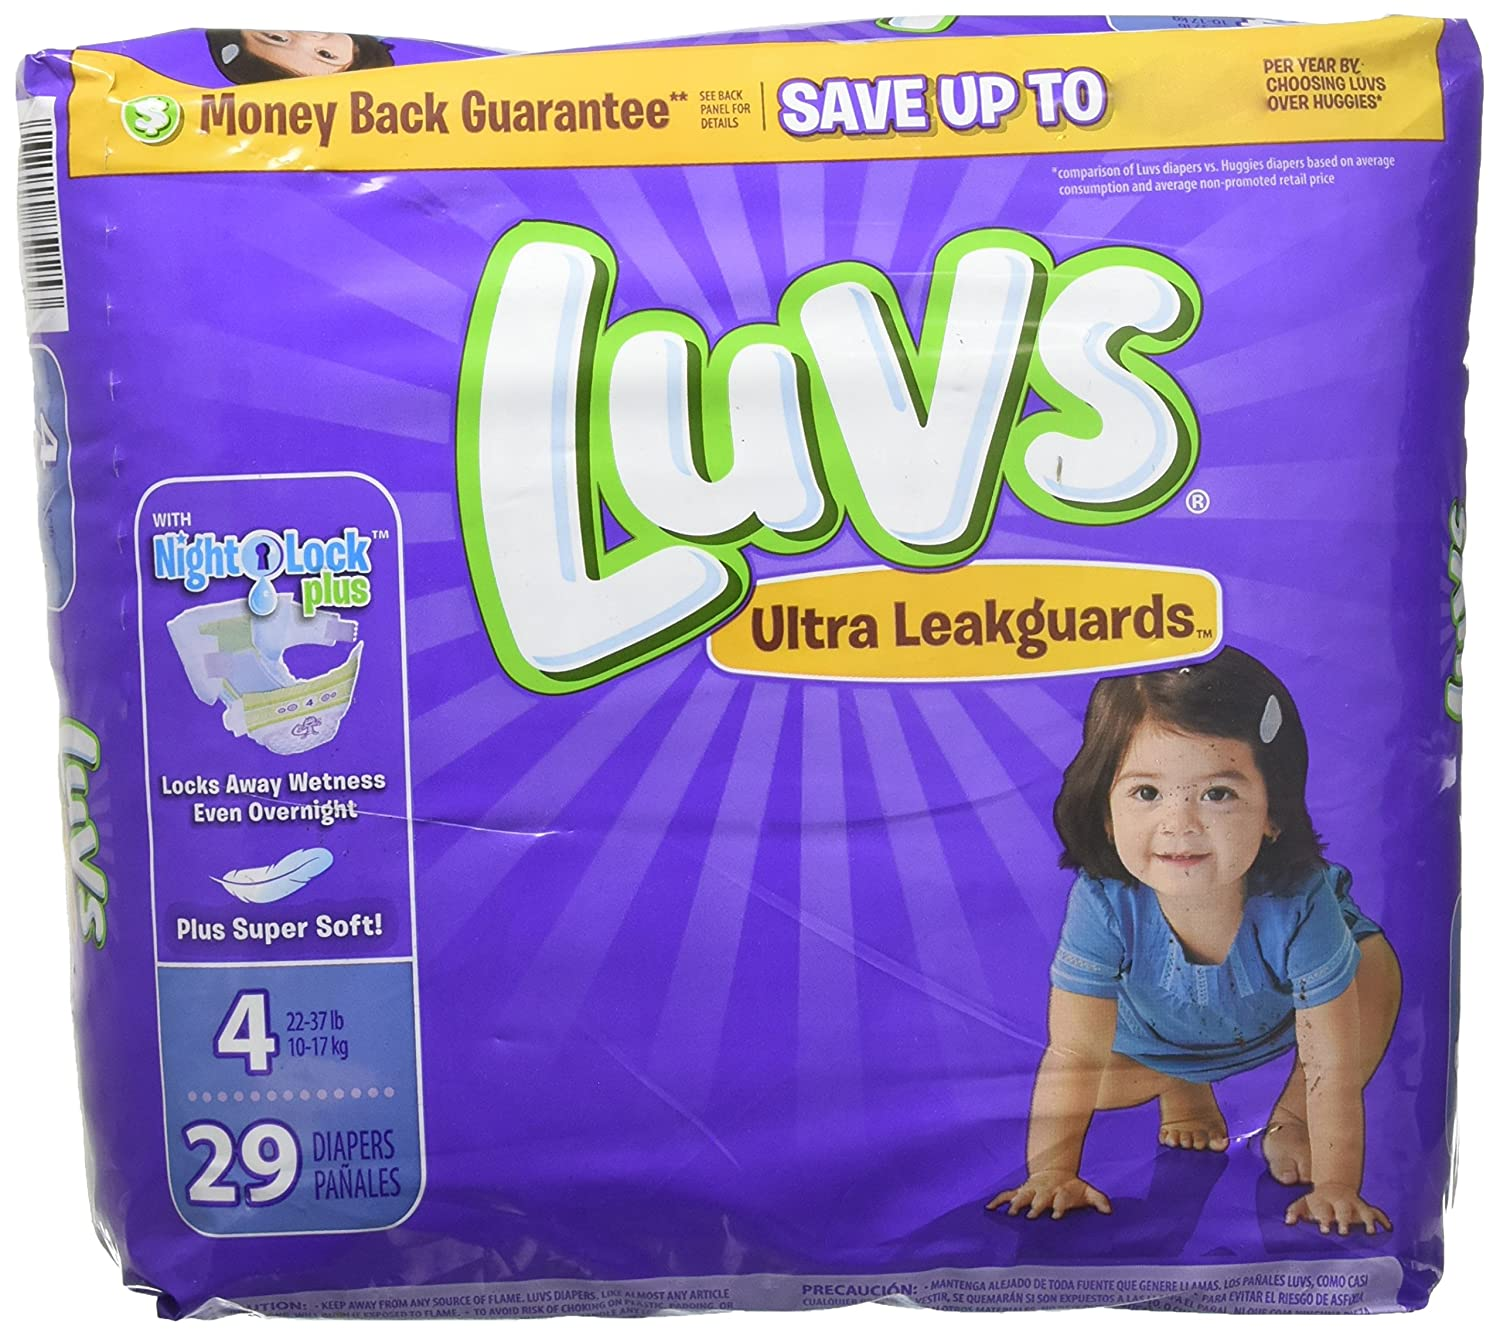 Amazon.com: Luvs with Ultra Leakguards, Size 4 Diapers, 29 ea: Health & Personal Care